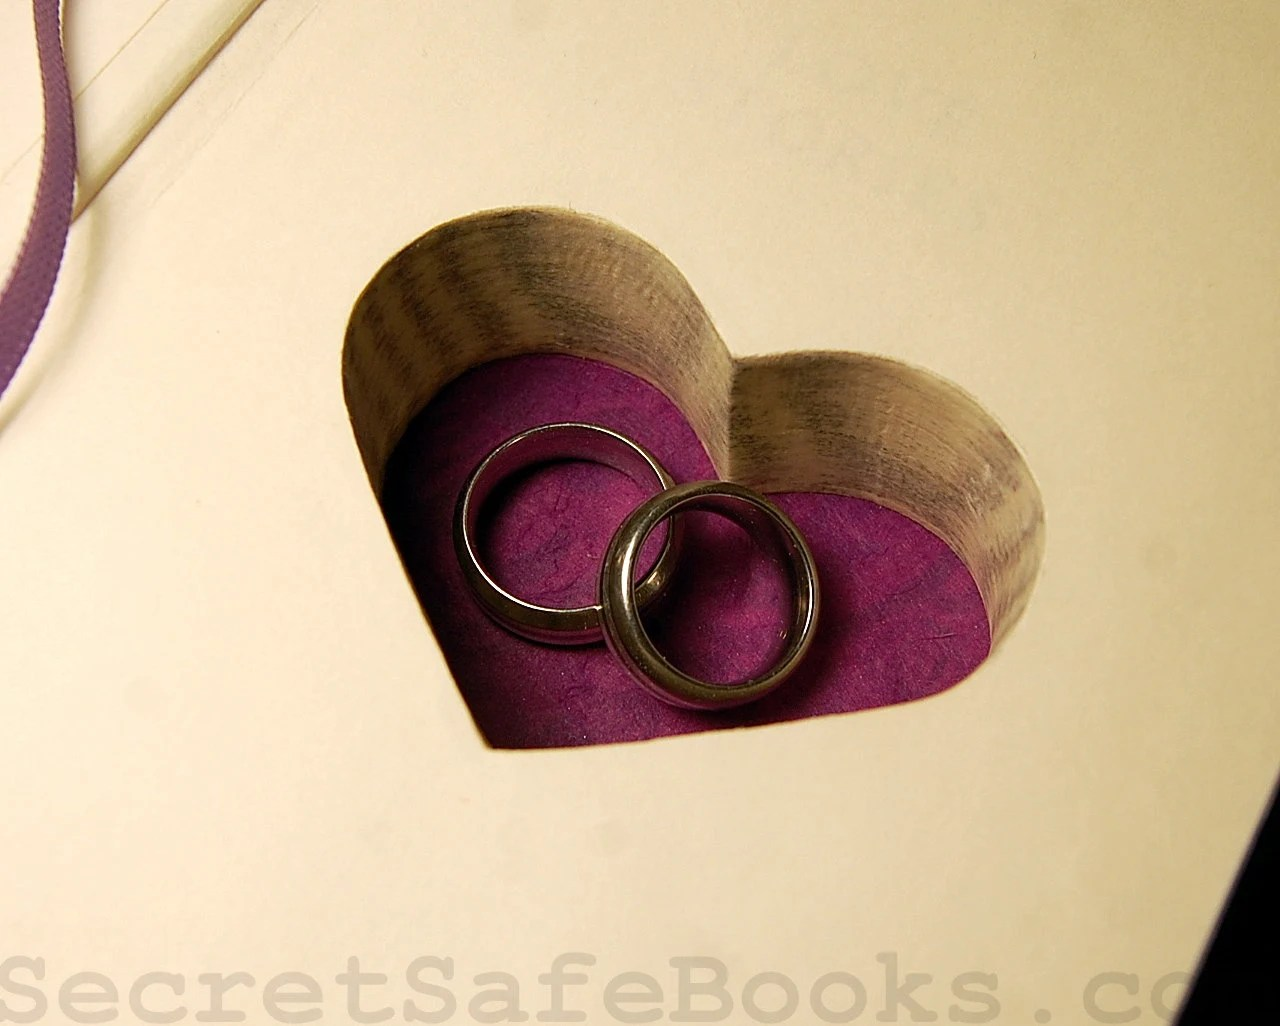 Hollow Book Safe with Heart (LOVE STORIES)